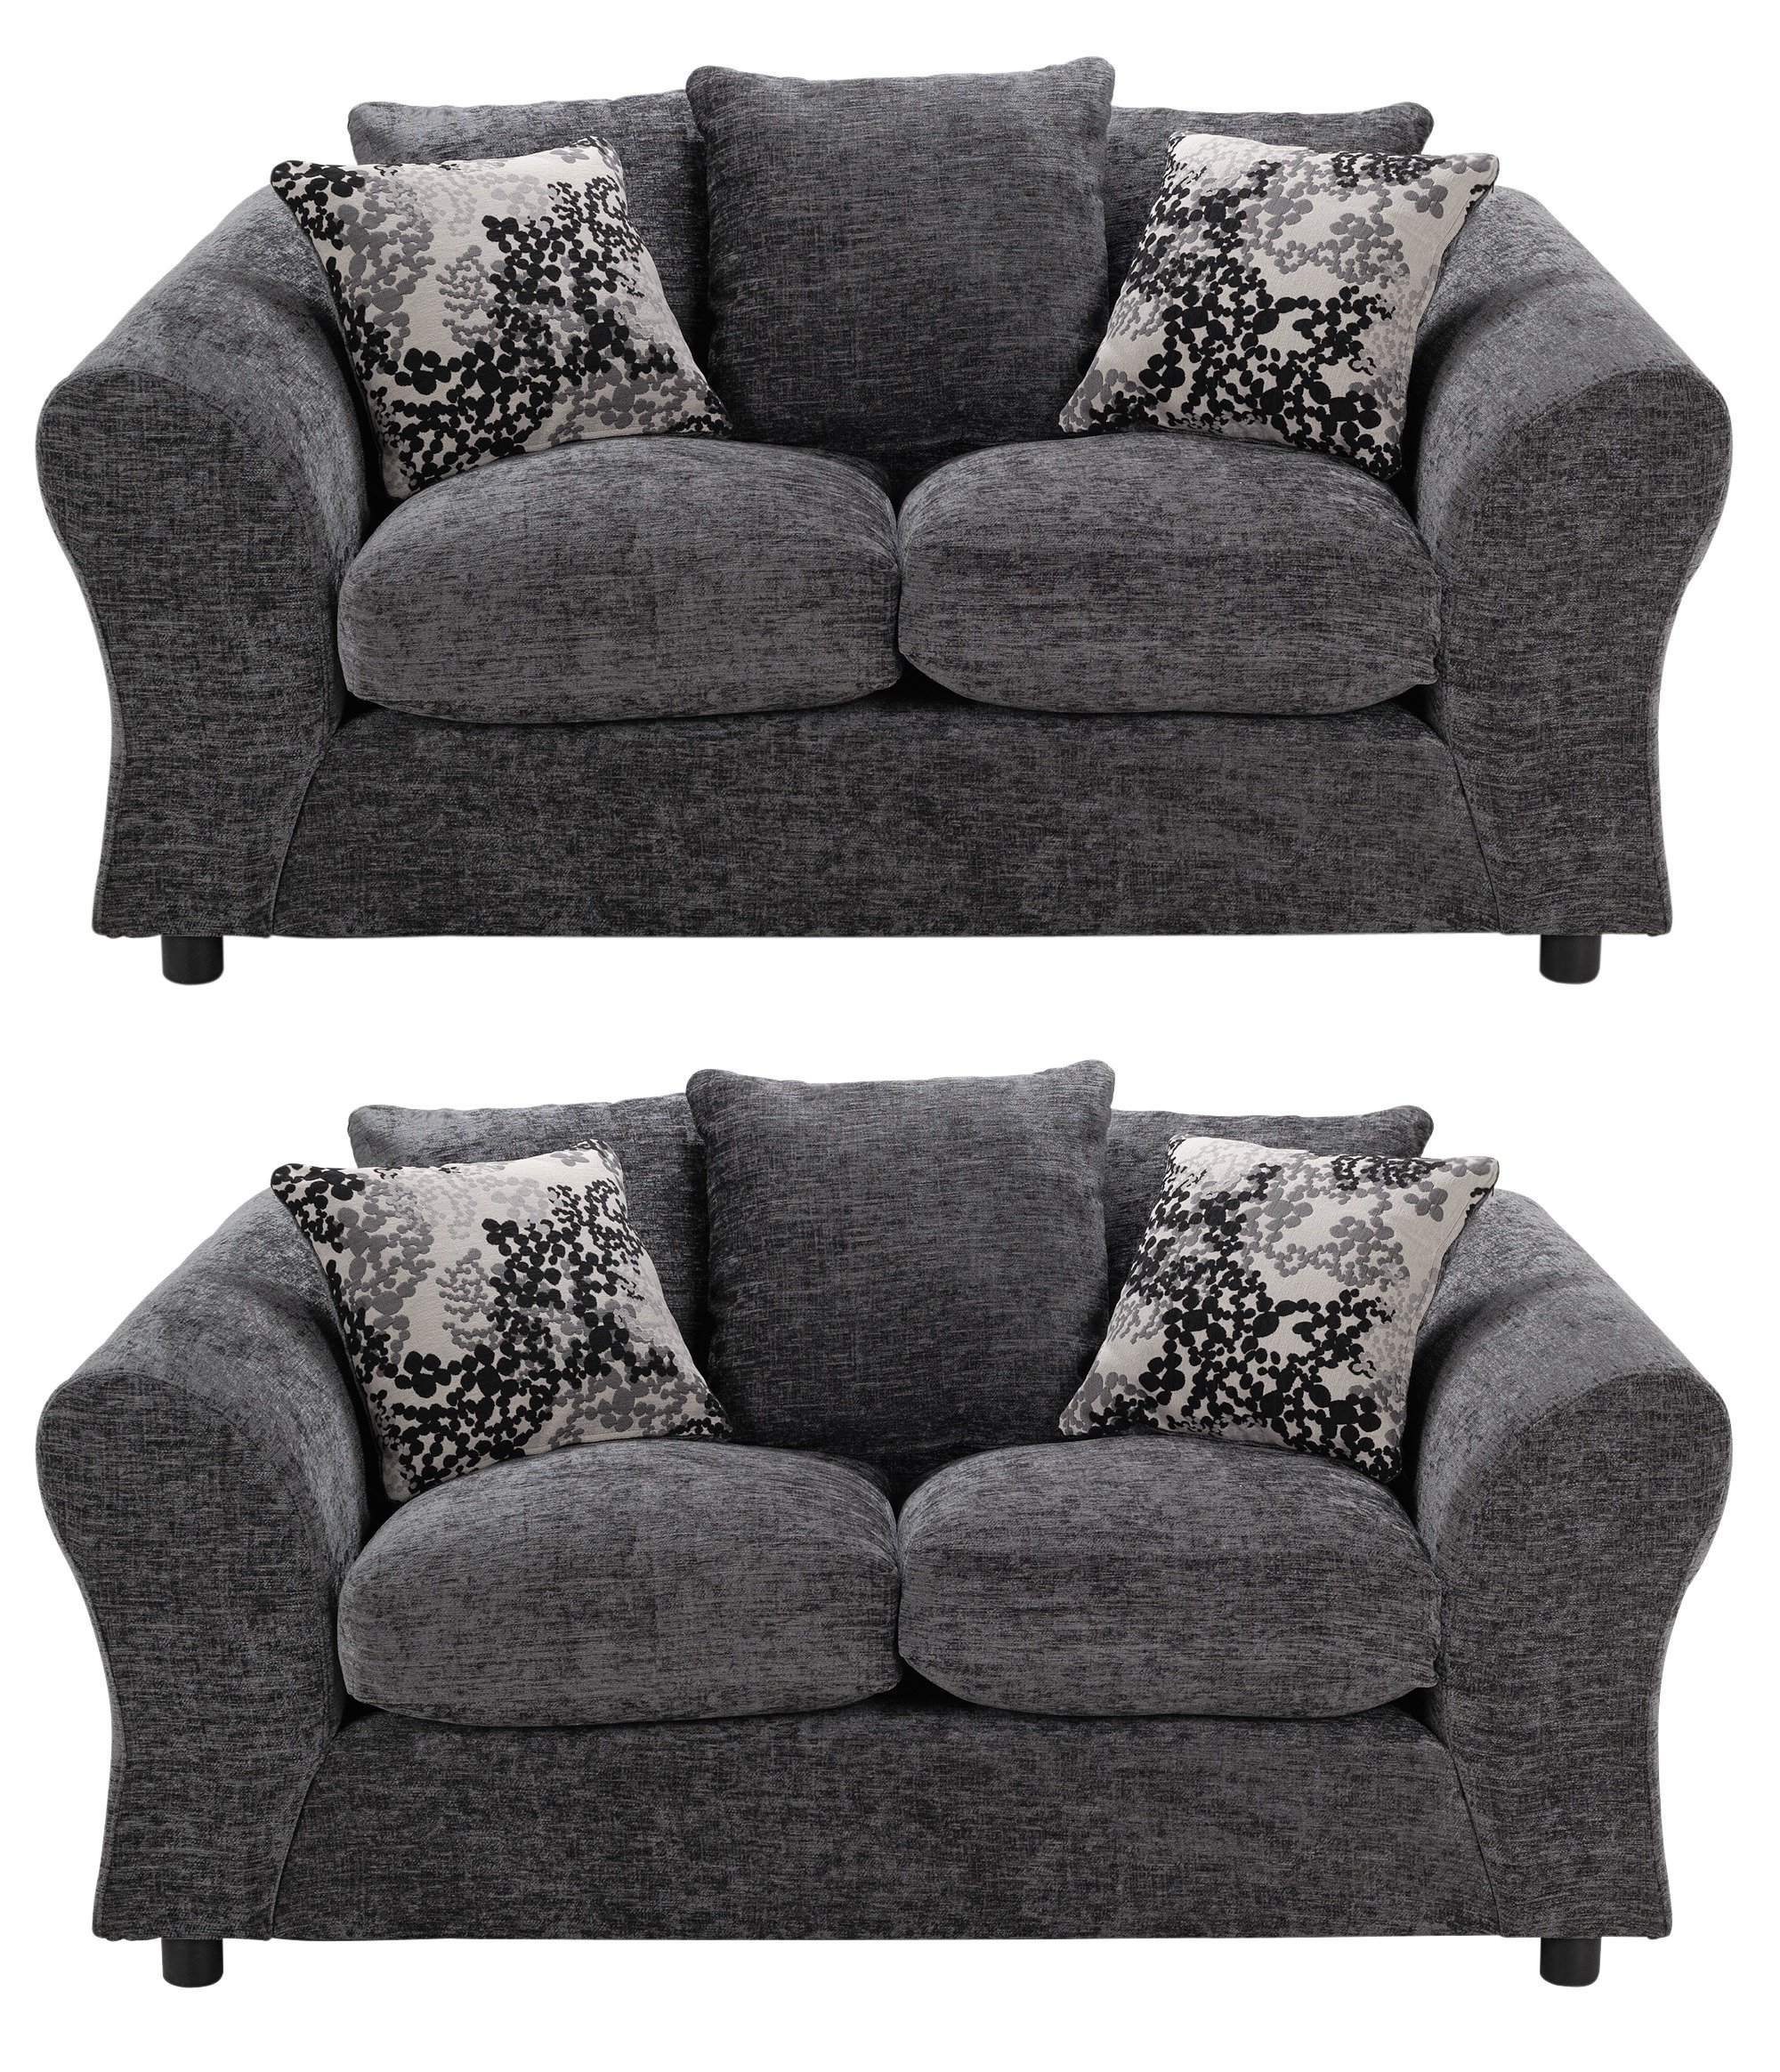 Argos Home - New Clara Regular and Regular Fabric - Sofa - Charcoal